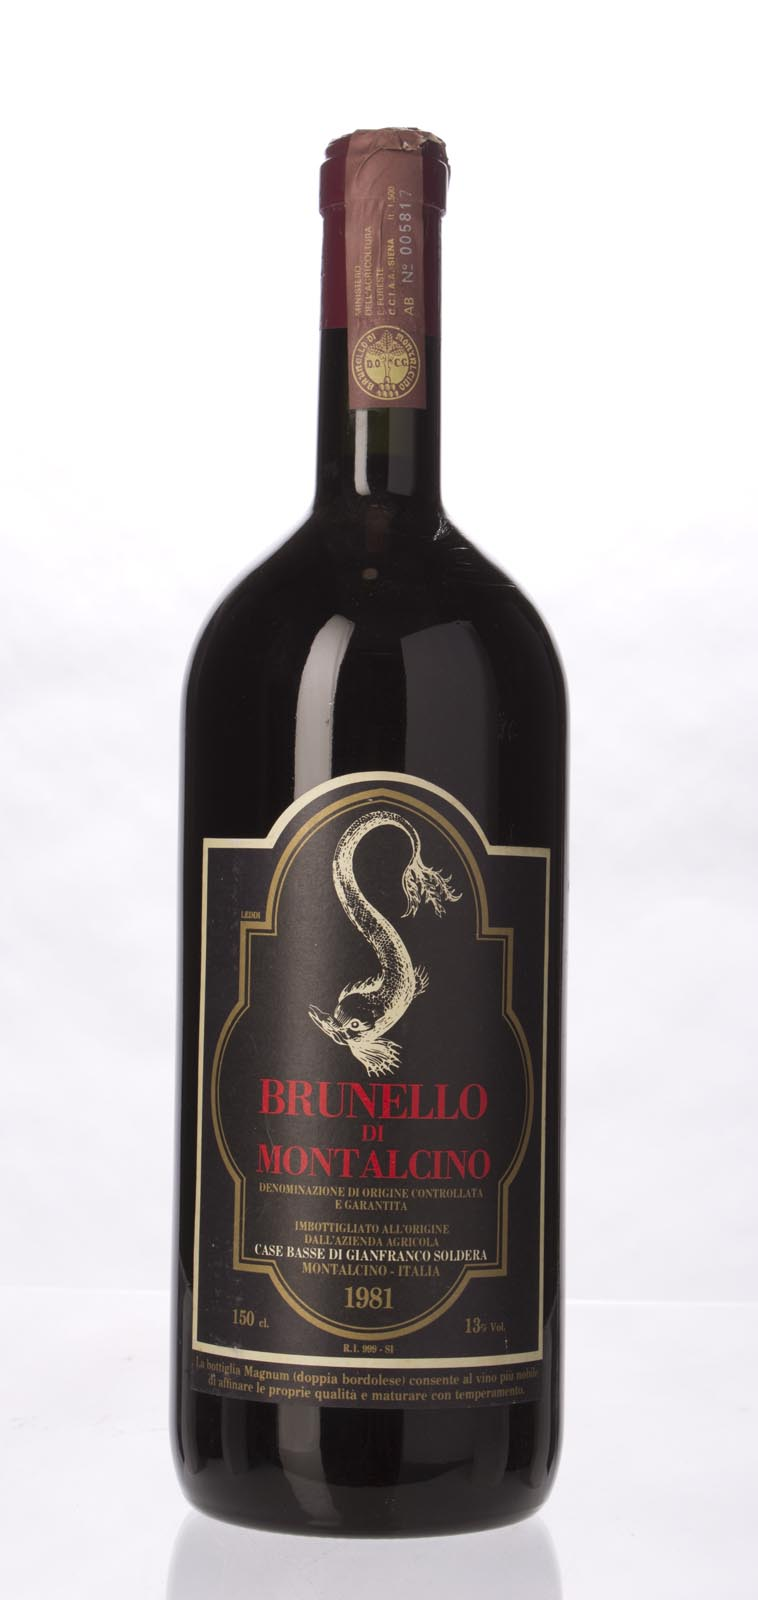 Soldera Brunello di Montalcino Case Basse 1981, 1.5L () from The BPW - Merchants of rare and fine wines.